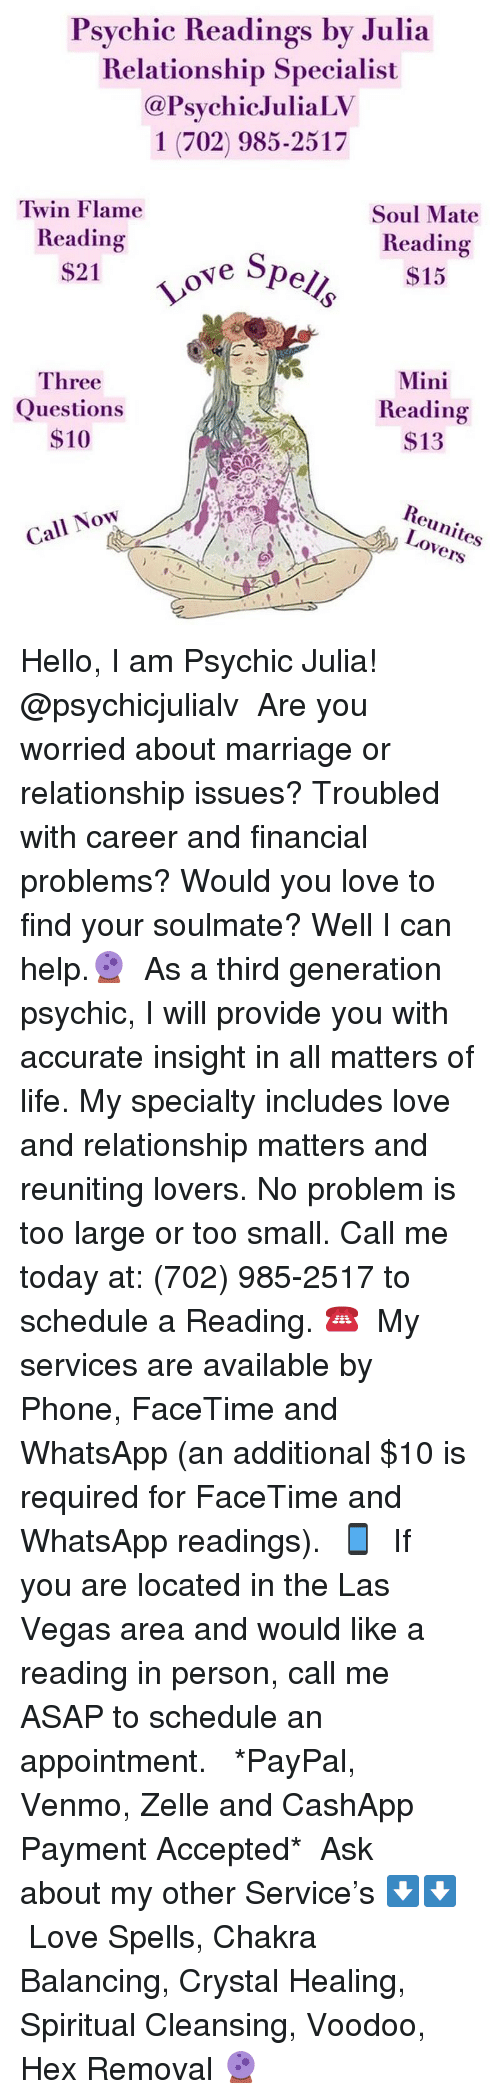 Facetime, Hello, and Life: sychic Iheading's by Julia  Relationship Specialist  @PsychicJuliaLV  1 (702) 985-2517  Twin Flame  Reading  $21  Soul Mate  Reading  ove Spc  Three  Questions  $10  Mini  Reading  $13  Reunites  Lovers  Call Now Hello, I am Psychic Julia! @psychicjulialv  Are you worried about marriage or relationship issues? Troubled with career and financial problems? Would you love to find your soulmate? Well I can help.🔮  As a third generation psychic, I will provide you with accurate insight in all matters of life. My specialty includes love and relationship matters and reuniting lovers. No problem is too large or too small. Call me today at: (702) 985-2517 to schedule a Reading. ☎️  My services are available by Phone, FaceTime and WhatsApp (an additional $10 is required for FaceTime and WhatsApp readings).📱  If you are located in the Las Vegas area and would like a reading in person, call me ASAP to schedule an appointment.   *PayPal, Venmo, Zelle and CashApp Payment Accepted*  Ask about my other Service's ⬇️⬇️ Love Spells, Chakra Balancing, Crystal Healing, Spiritual Cleansing, Voodoo, Hex Removal 🔮